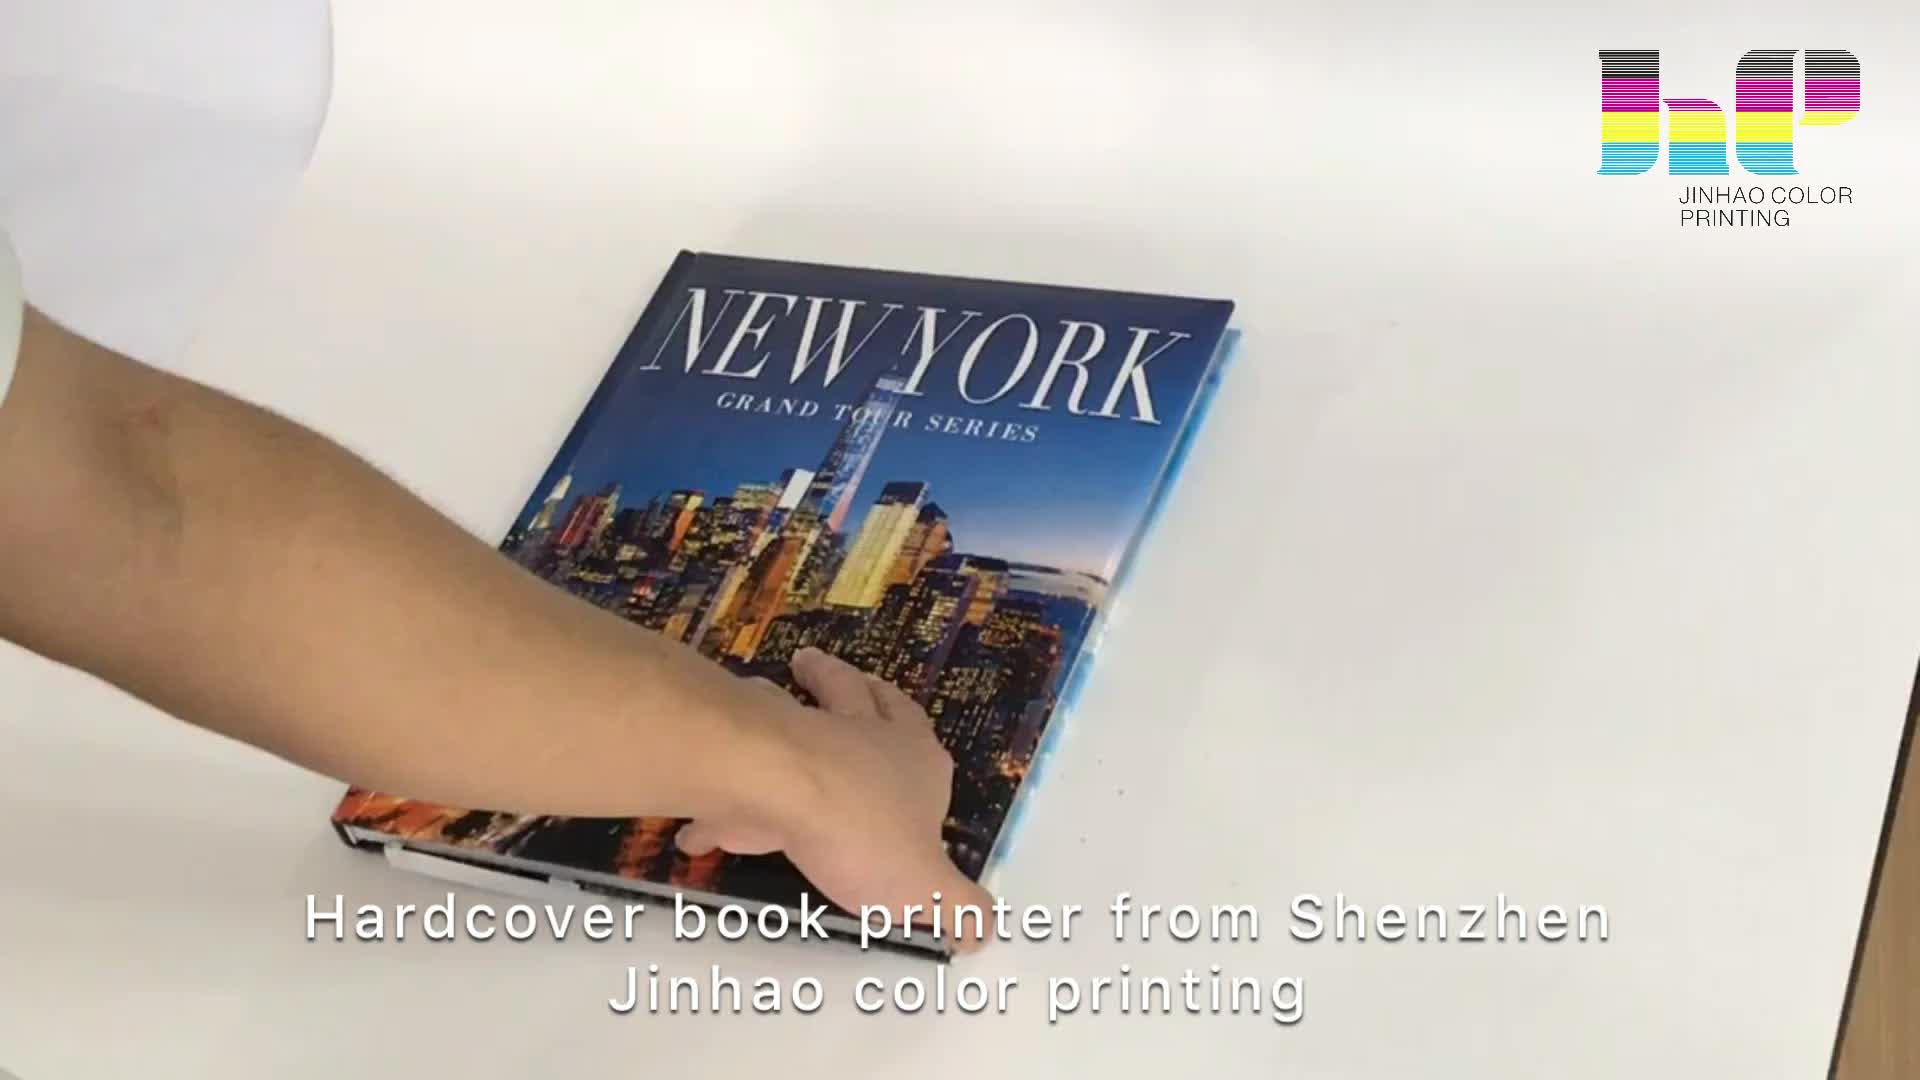 Full color hardcover book printing for children